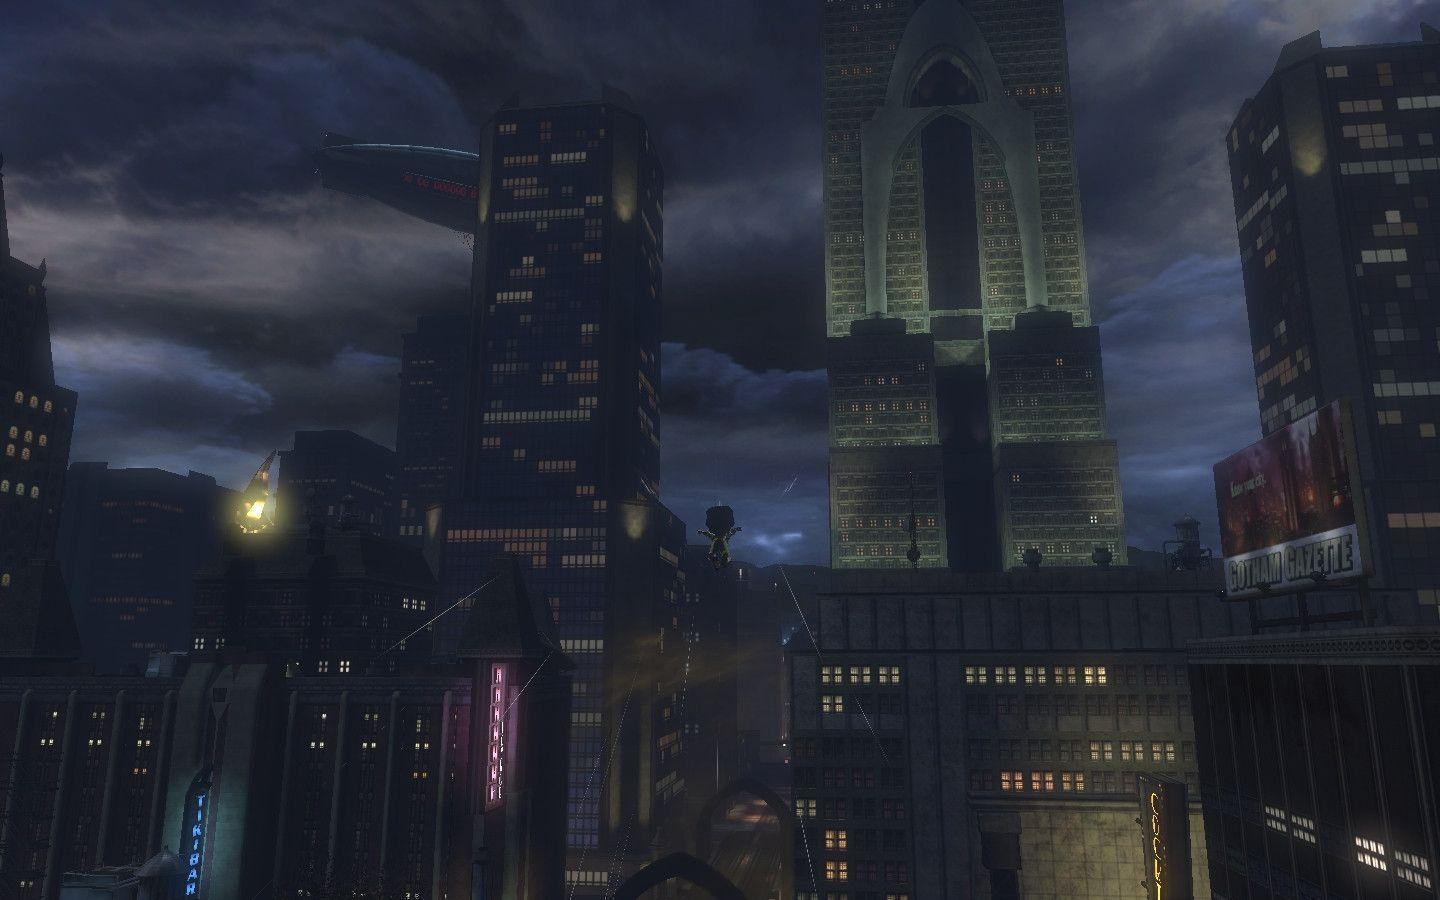 Gotham City The Dark Night Desktop Wallpaper 27078 Hi-Resolution ...